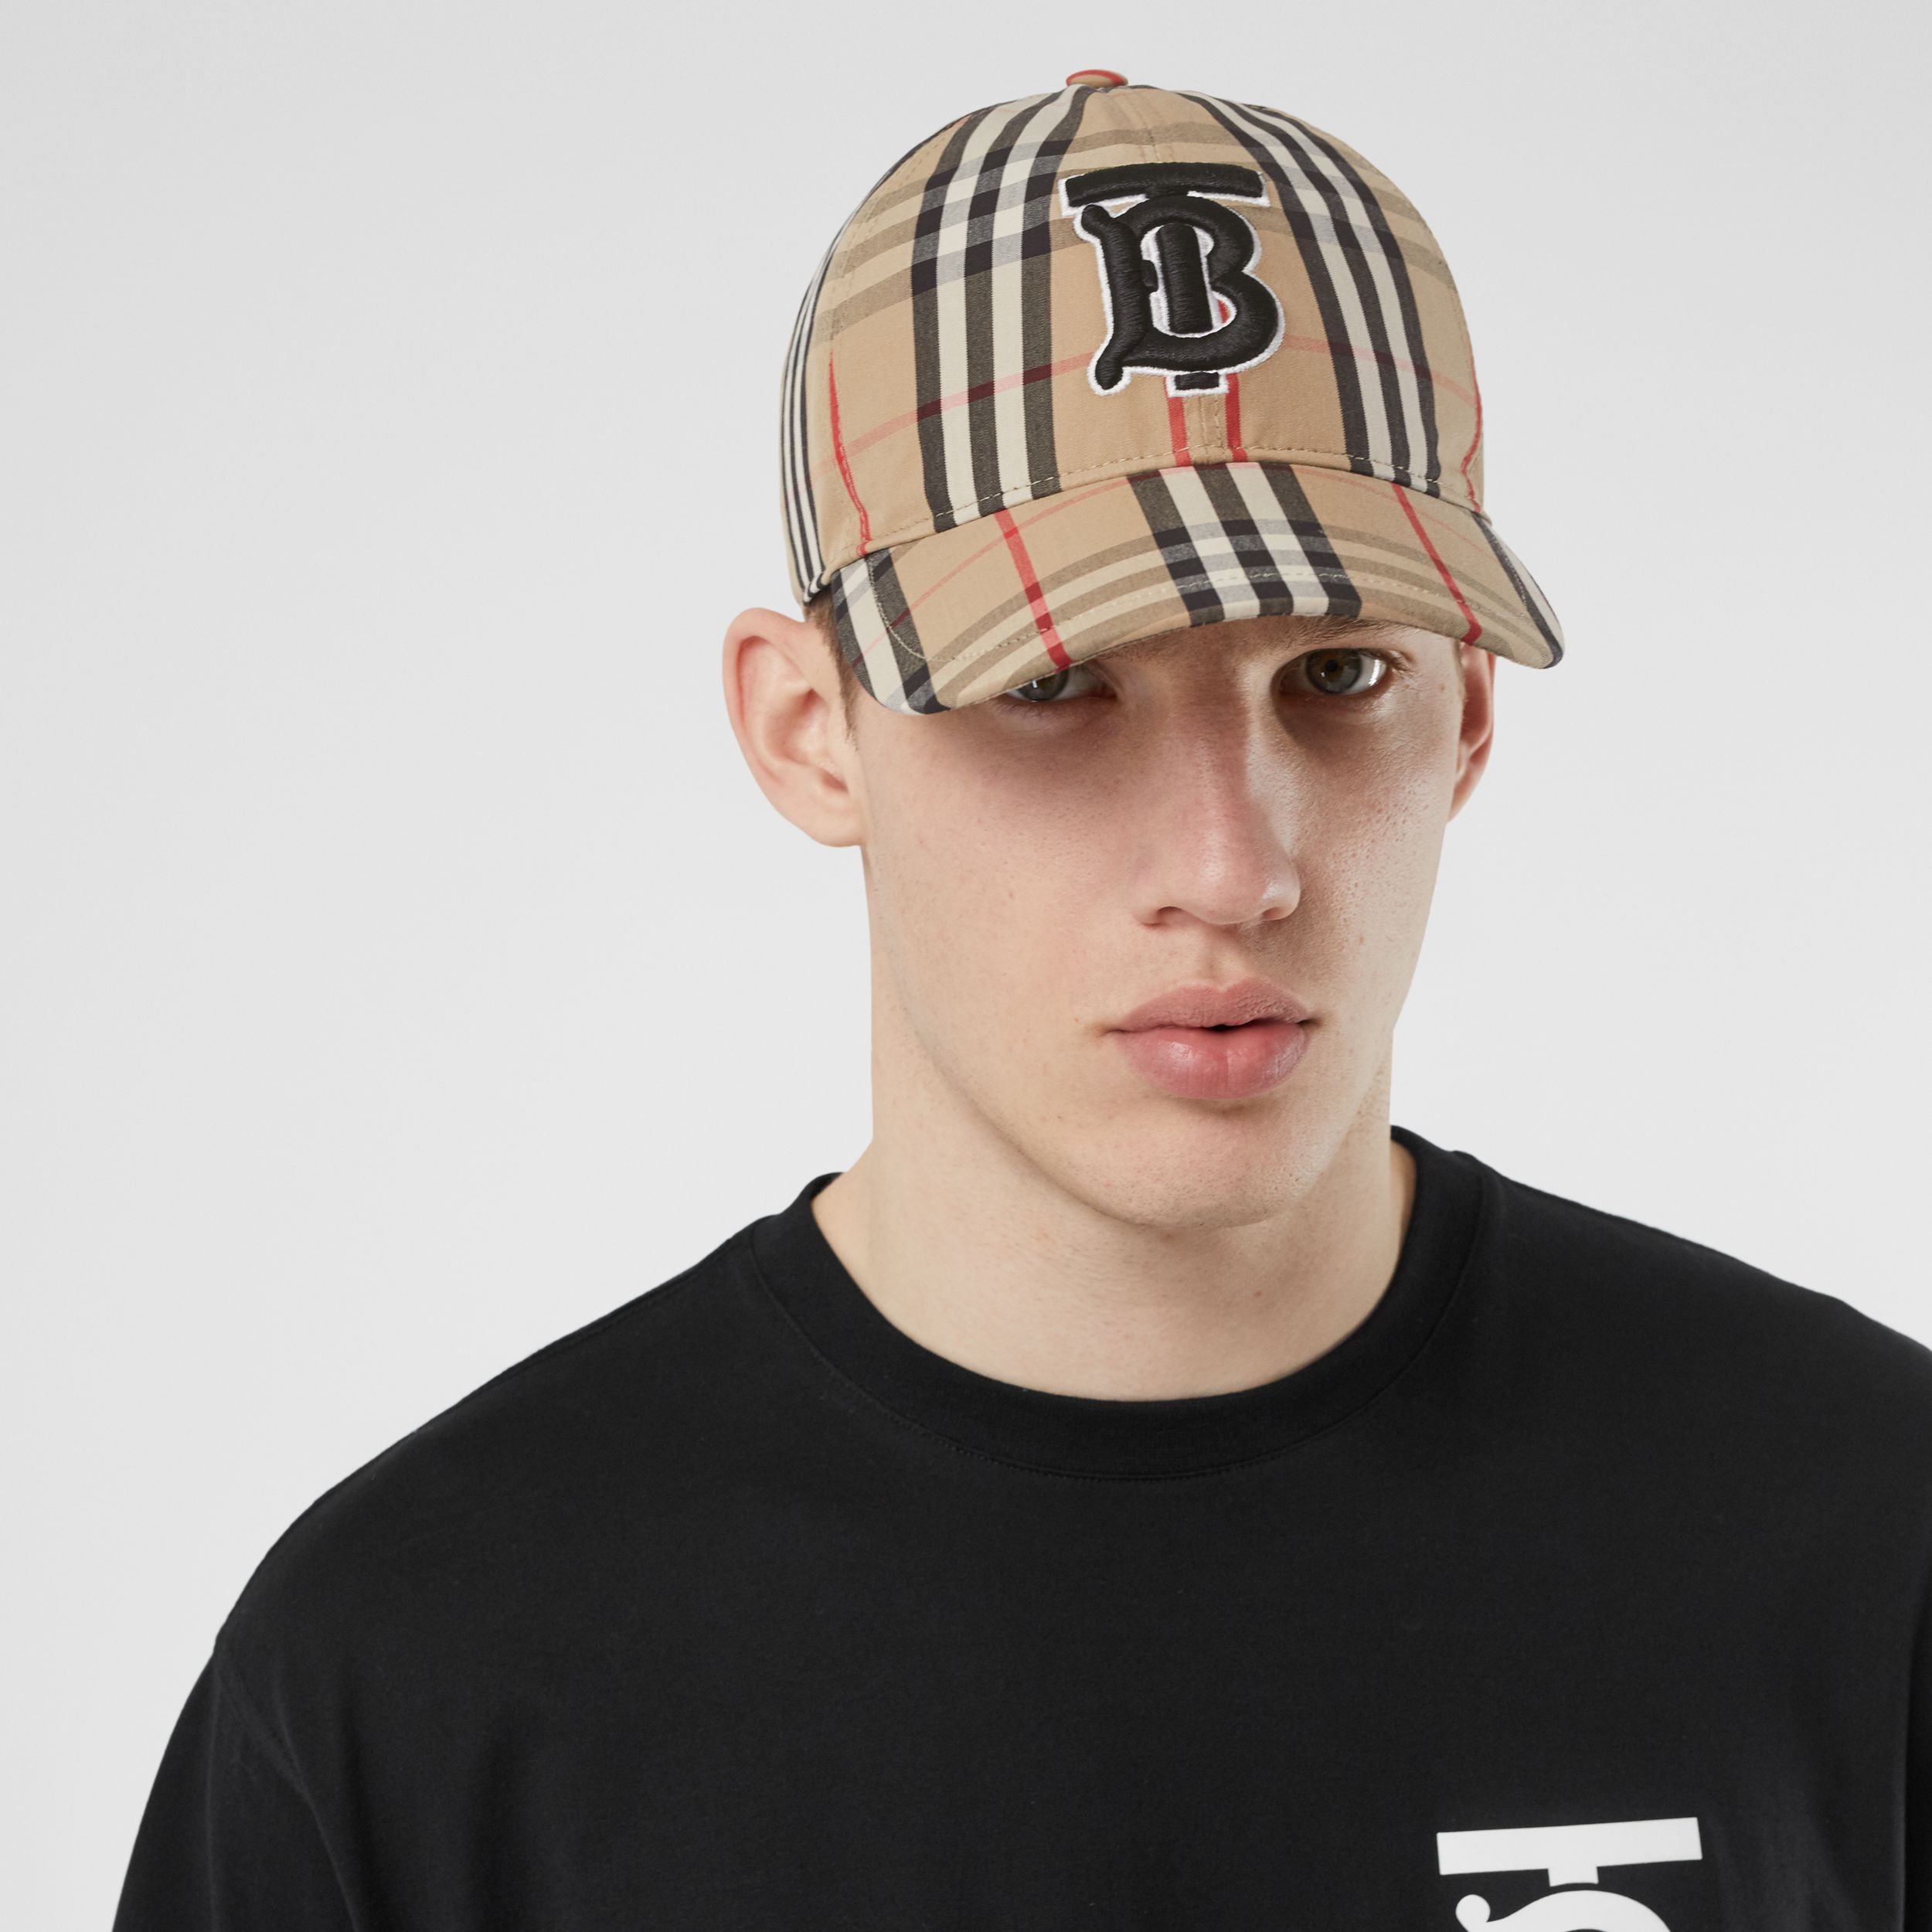 Monogram Motif Vintage Check Cotton Baseball Cap in Archive Beige | Burberry United States - 4